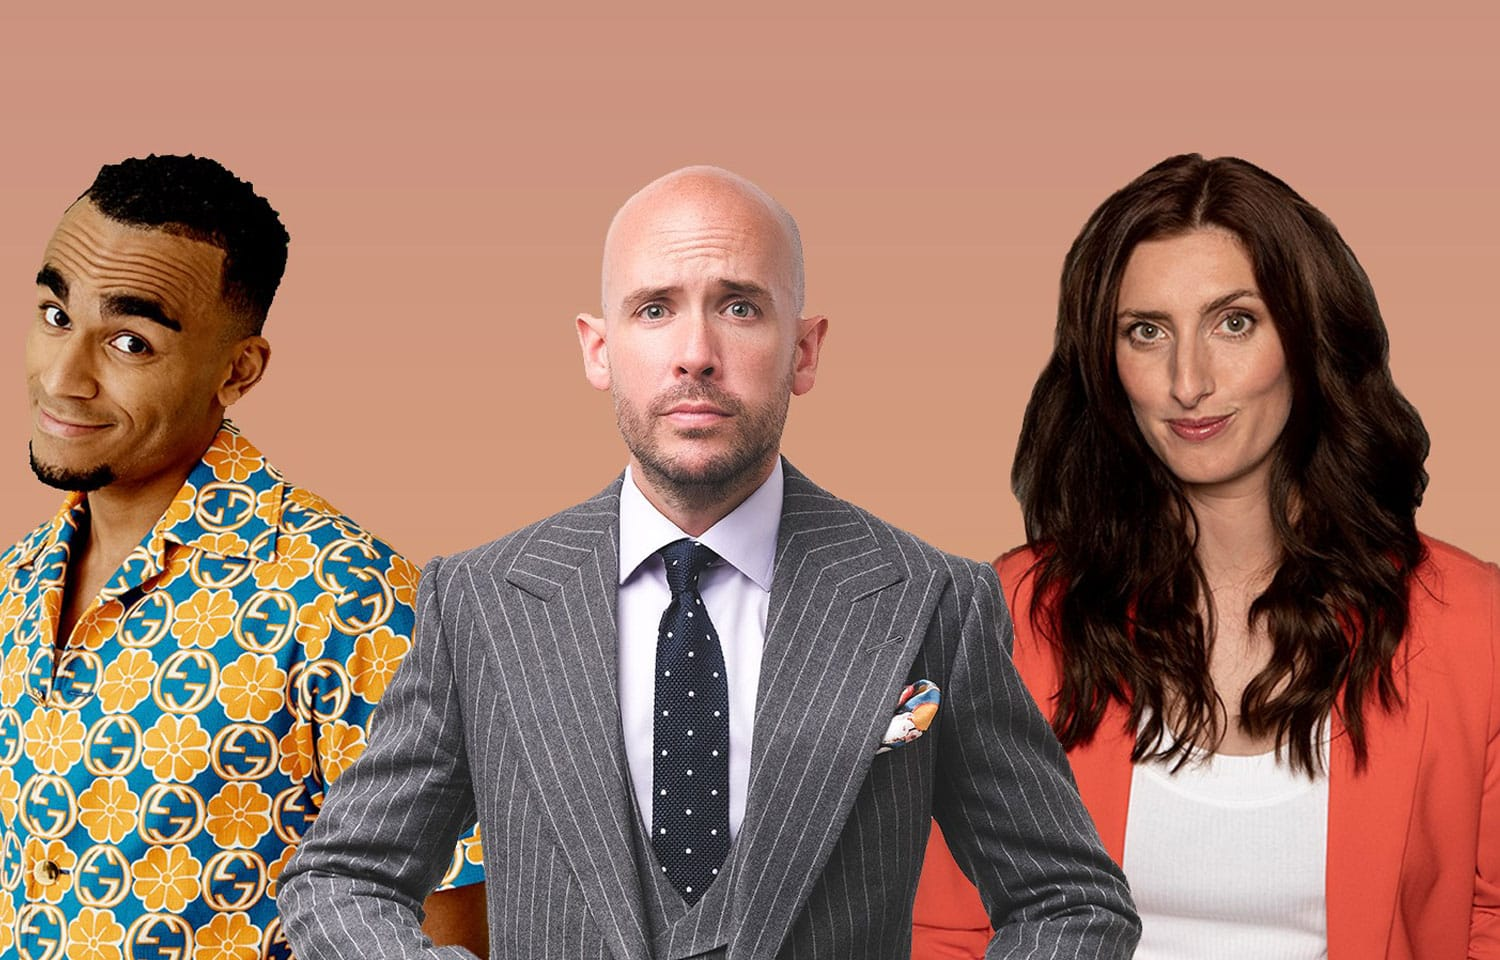 JESSICA KNAPPETT AND TOM ALLEN TO STAR IN COMPLAINTS WELCOME